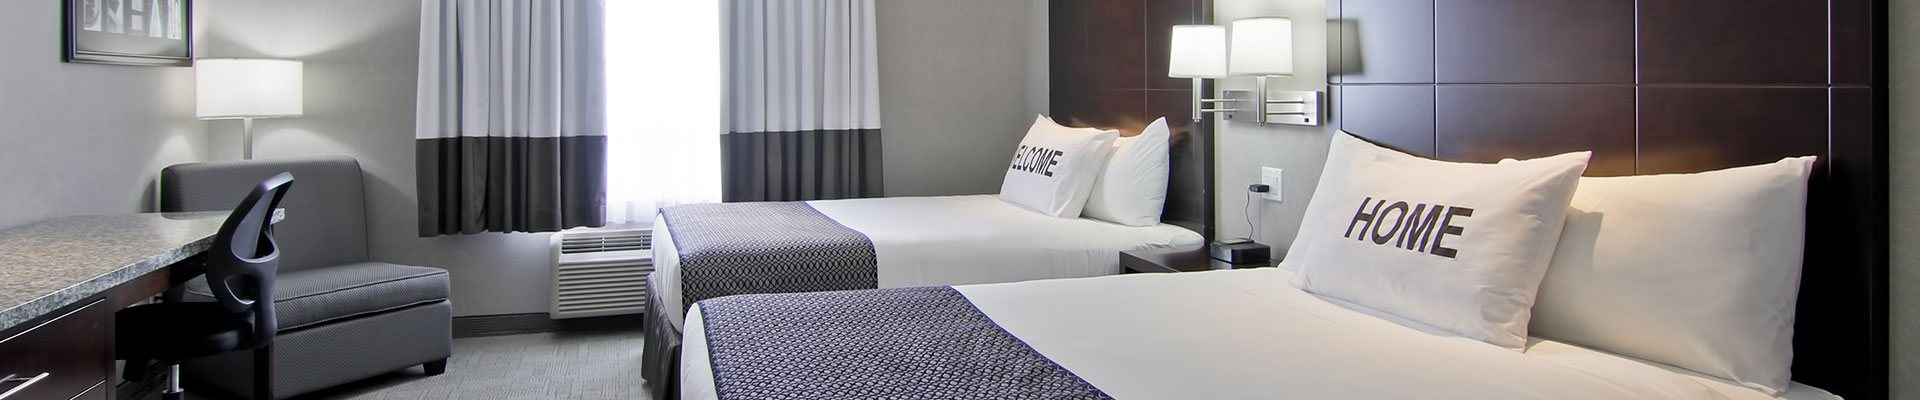 A two bed suite at d3h Home Inn & Suites Regina Airport showcases beds immaculately made up in white linen  with prominently displayed